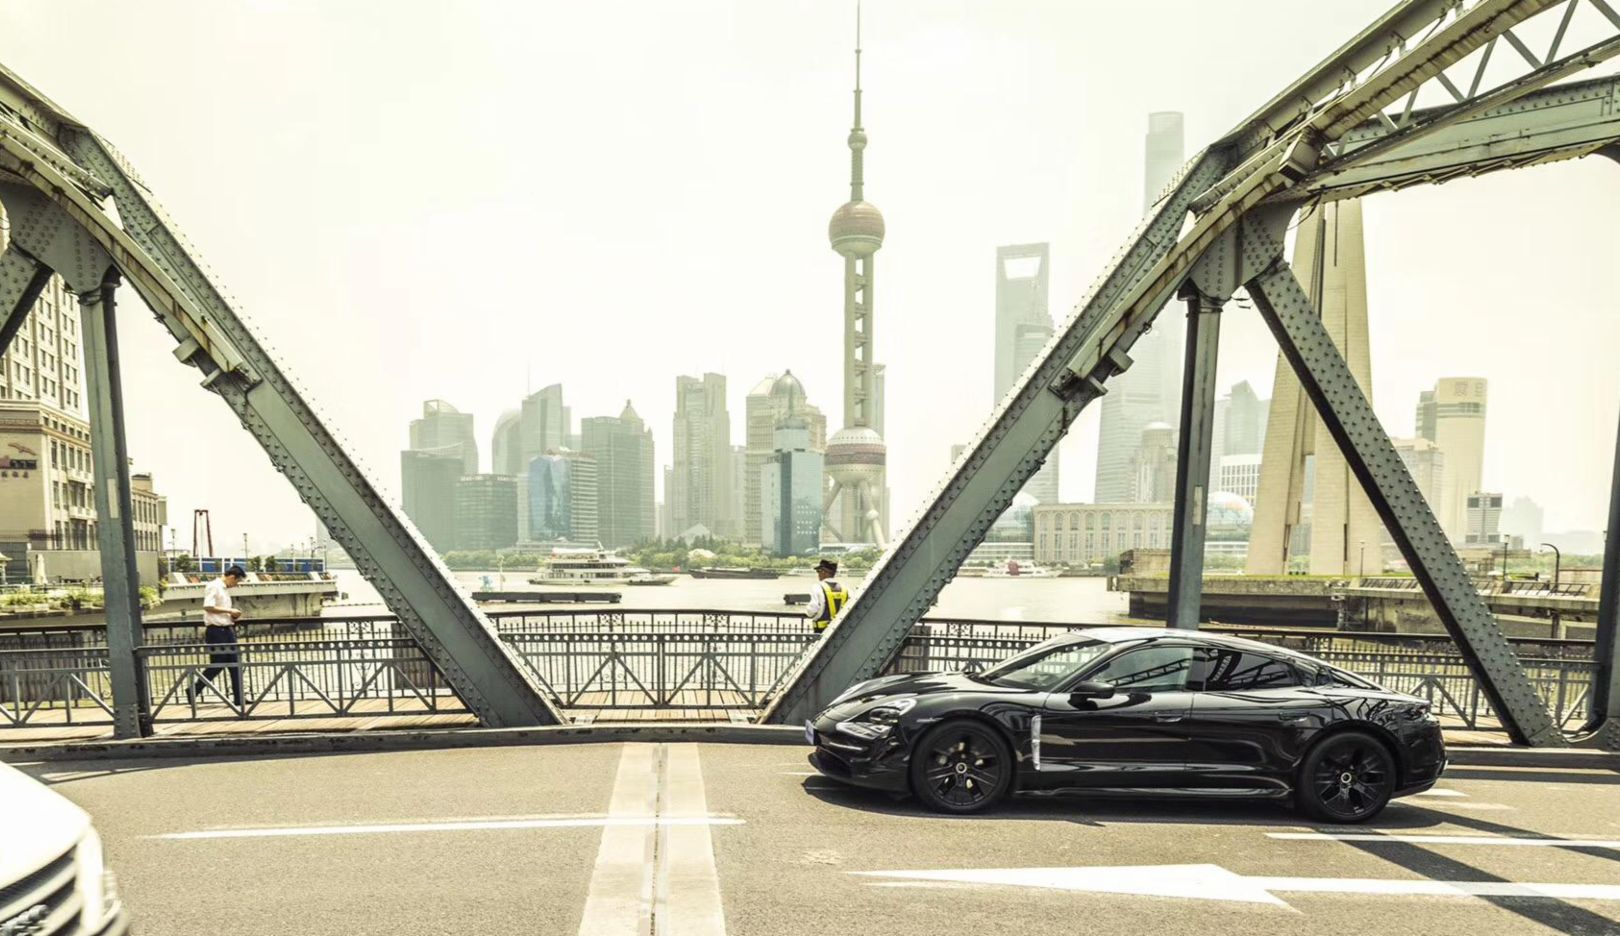 Kicking off in China: the Porsche Taycan visits Shanghai